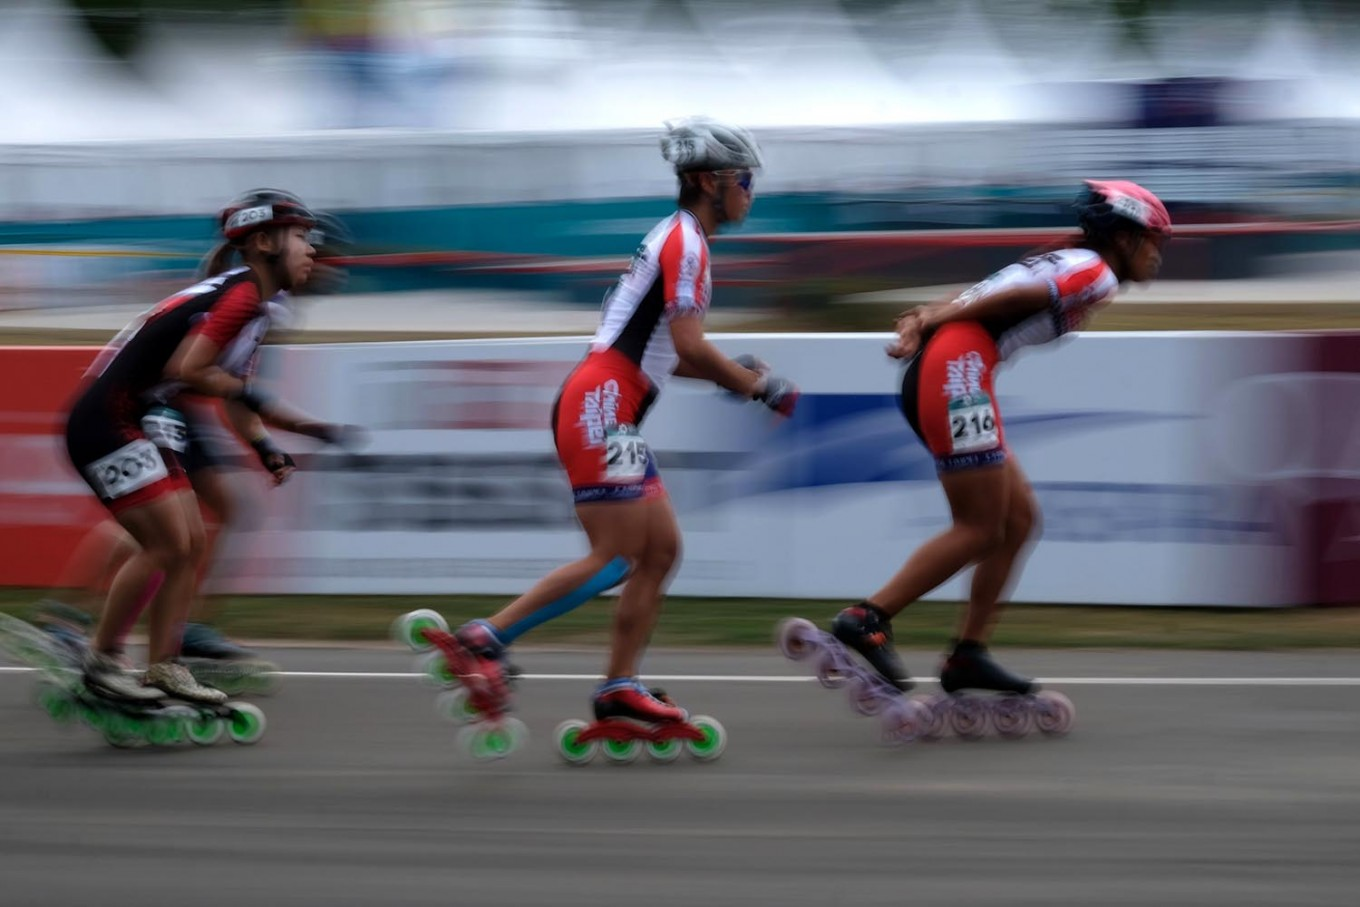 2018 08 31 52860 1535713463. large - Asian Games 2018 Roller Sports